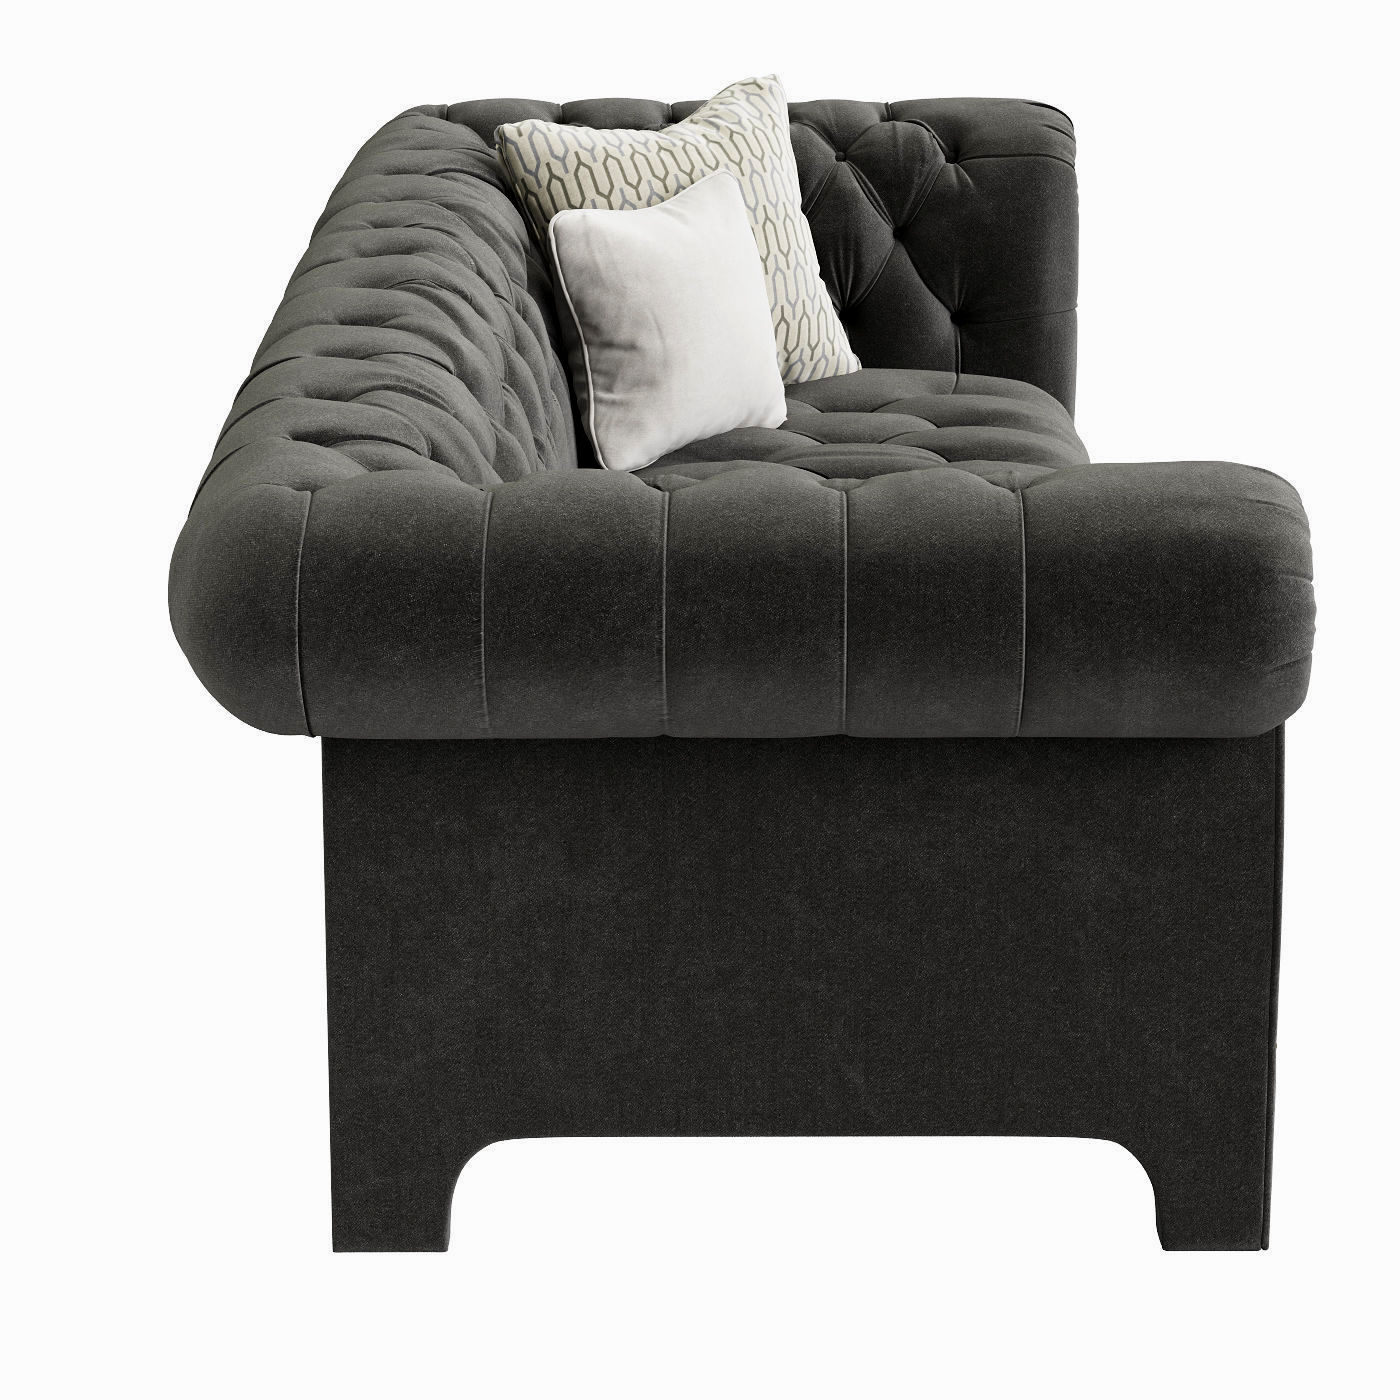 awesome queen size sleeper sofa model-Inspirational Queen Size Sleeper sofa Wallpaper